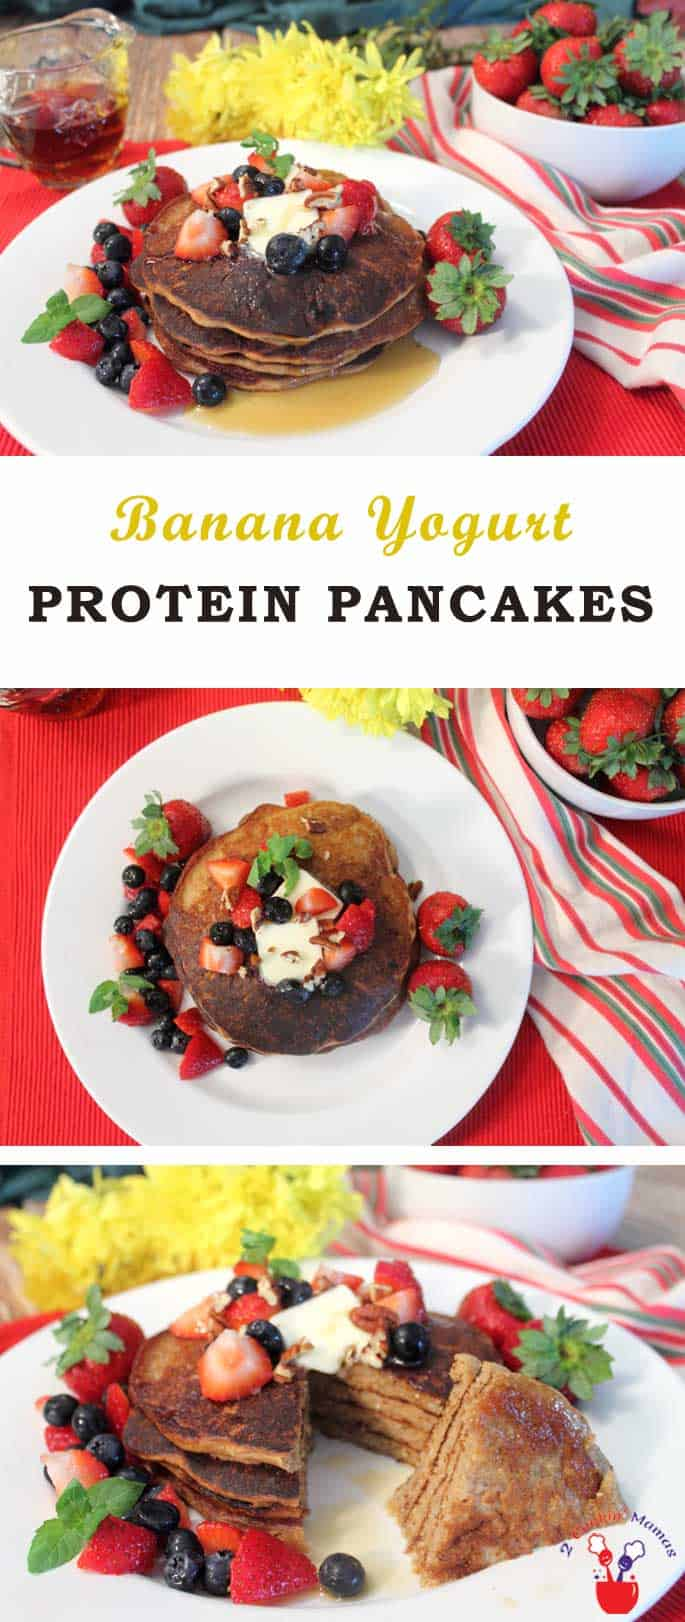 Protein Pancakes | 2 Cookin Mamas Start your day off with healthy high protein pancakes. They are packed full of protein, calcium, useful carbs & only a little sugar. Make the dry mix ahead of time & add liquid ingredients when you're ready for a fast start in the morning. #breakfast #pancakes #healthy #proteinpowder #chiaseeds #banana #yogurt #recipe